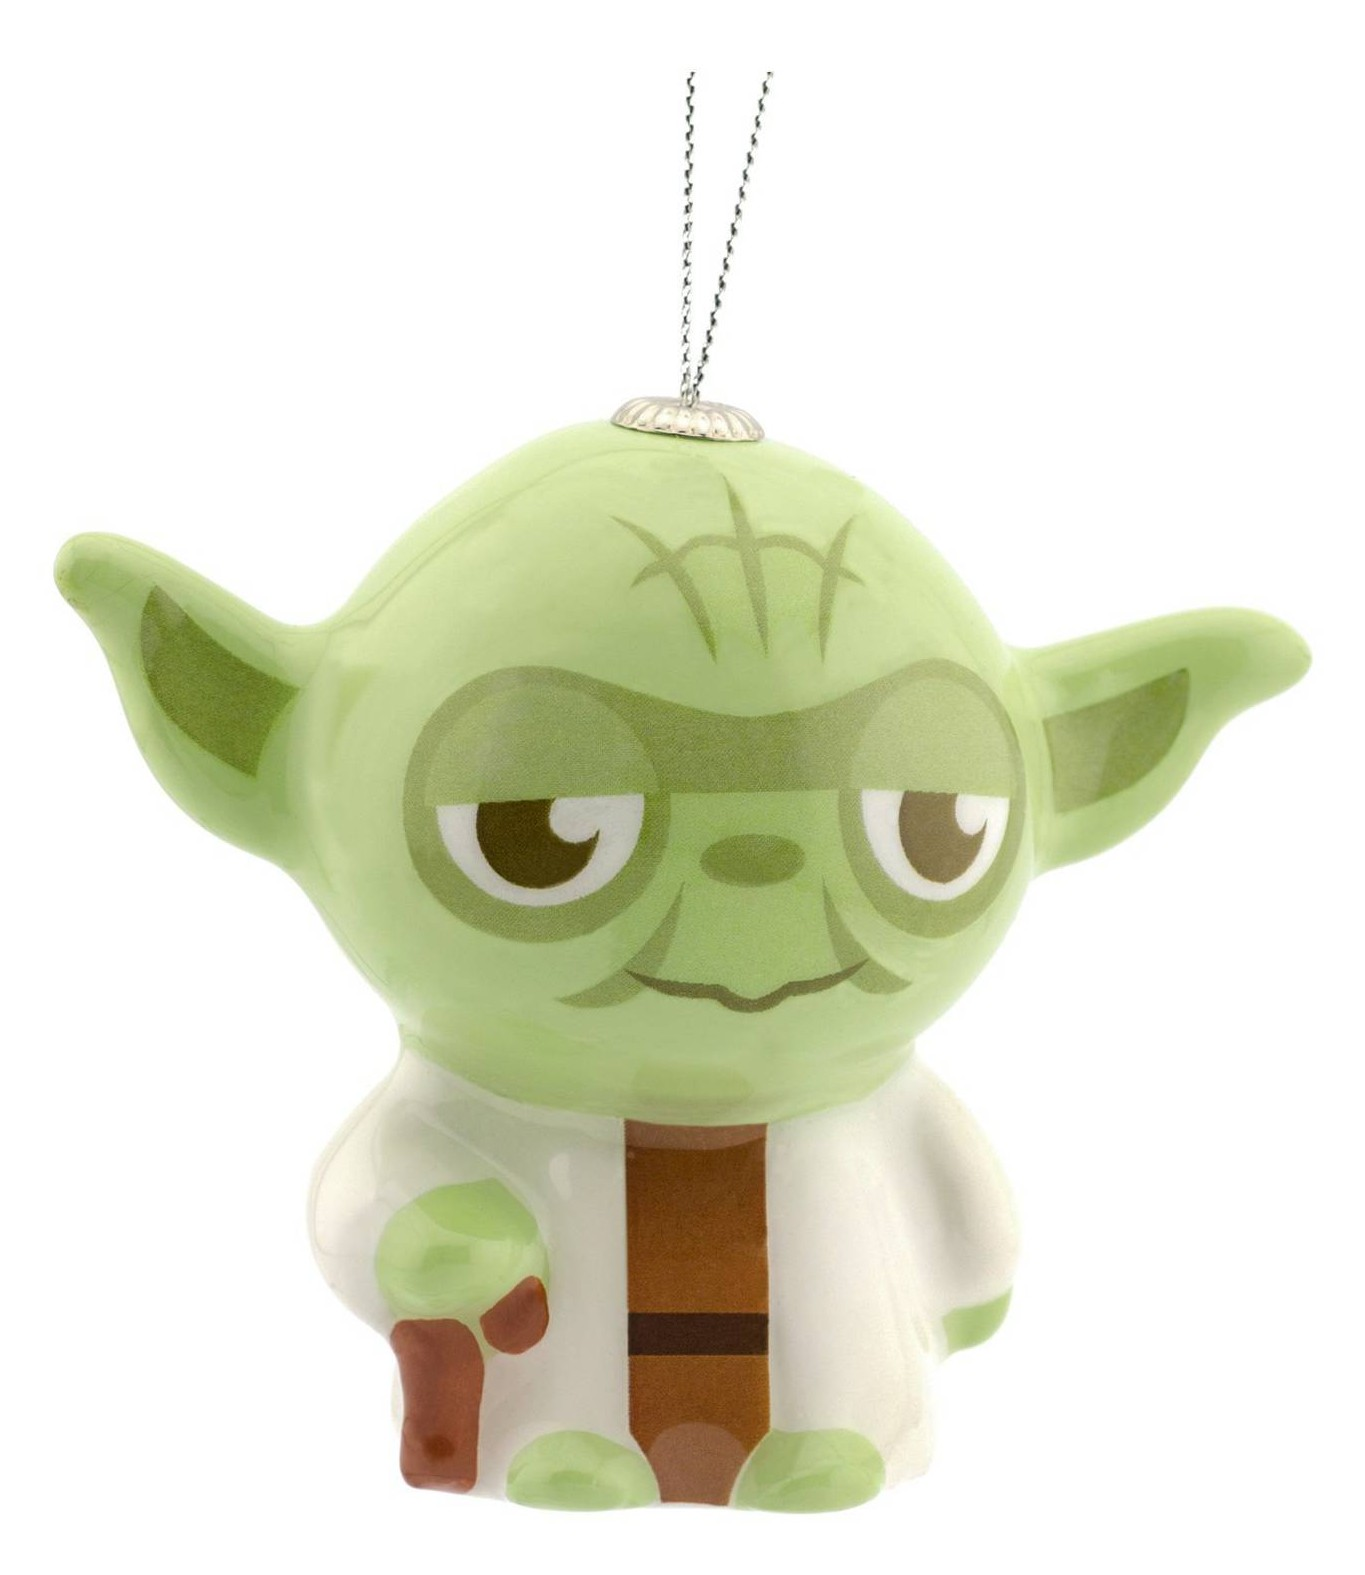 New baby ornaments - New Star Wars Decoupage Christmas Ornaments From Hallmark Available On Target Com